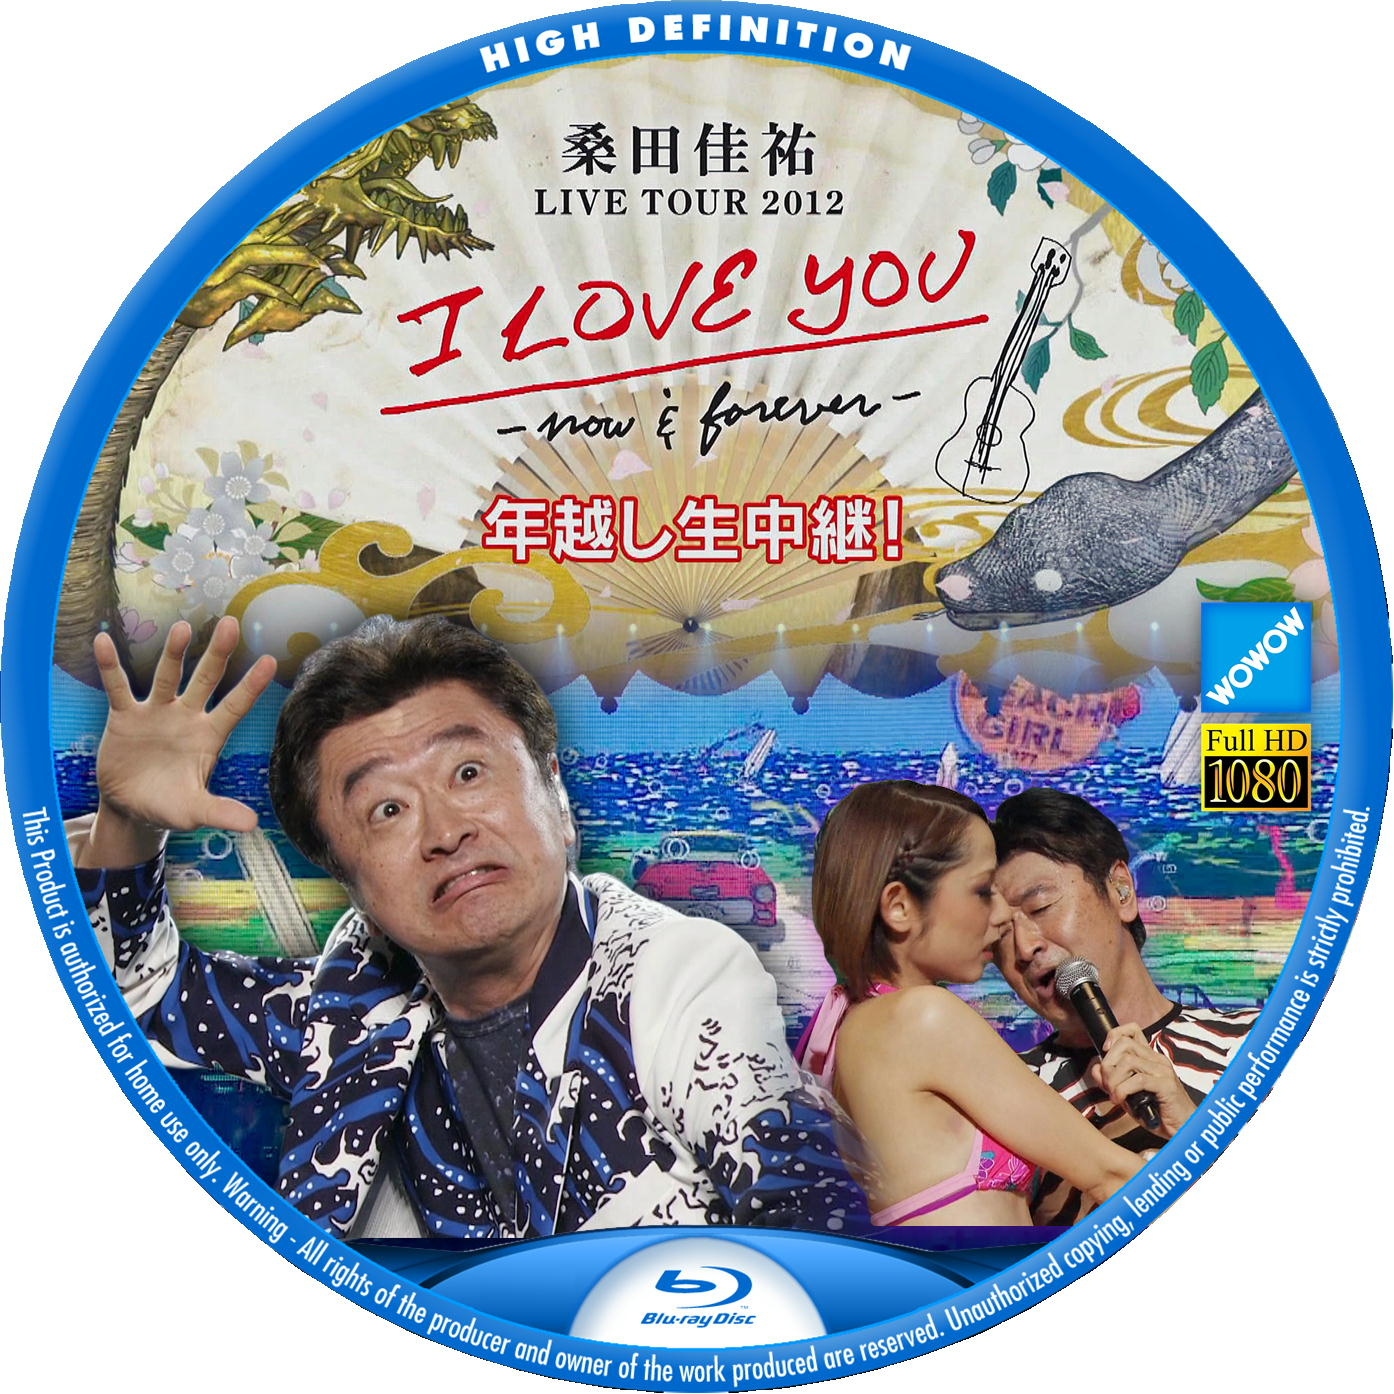 桑田佳祐 LIVE TOUR 2012 I LOVE YOU BDラベル